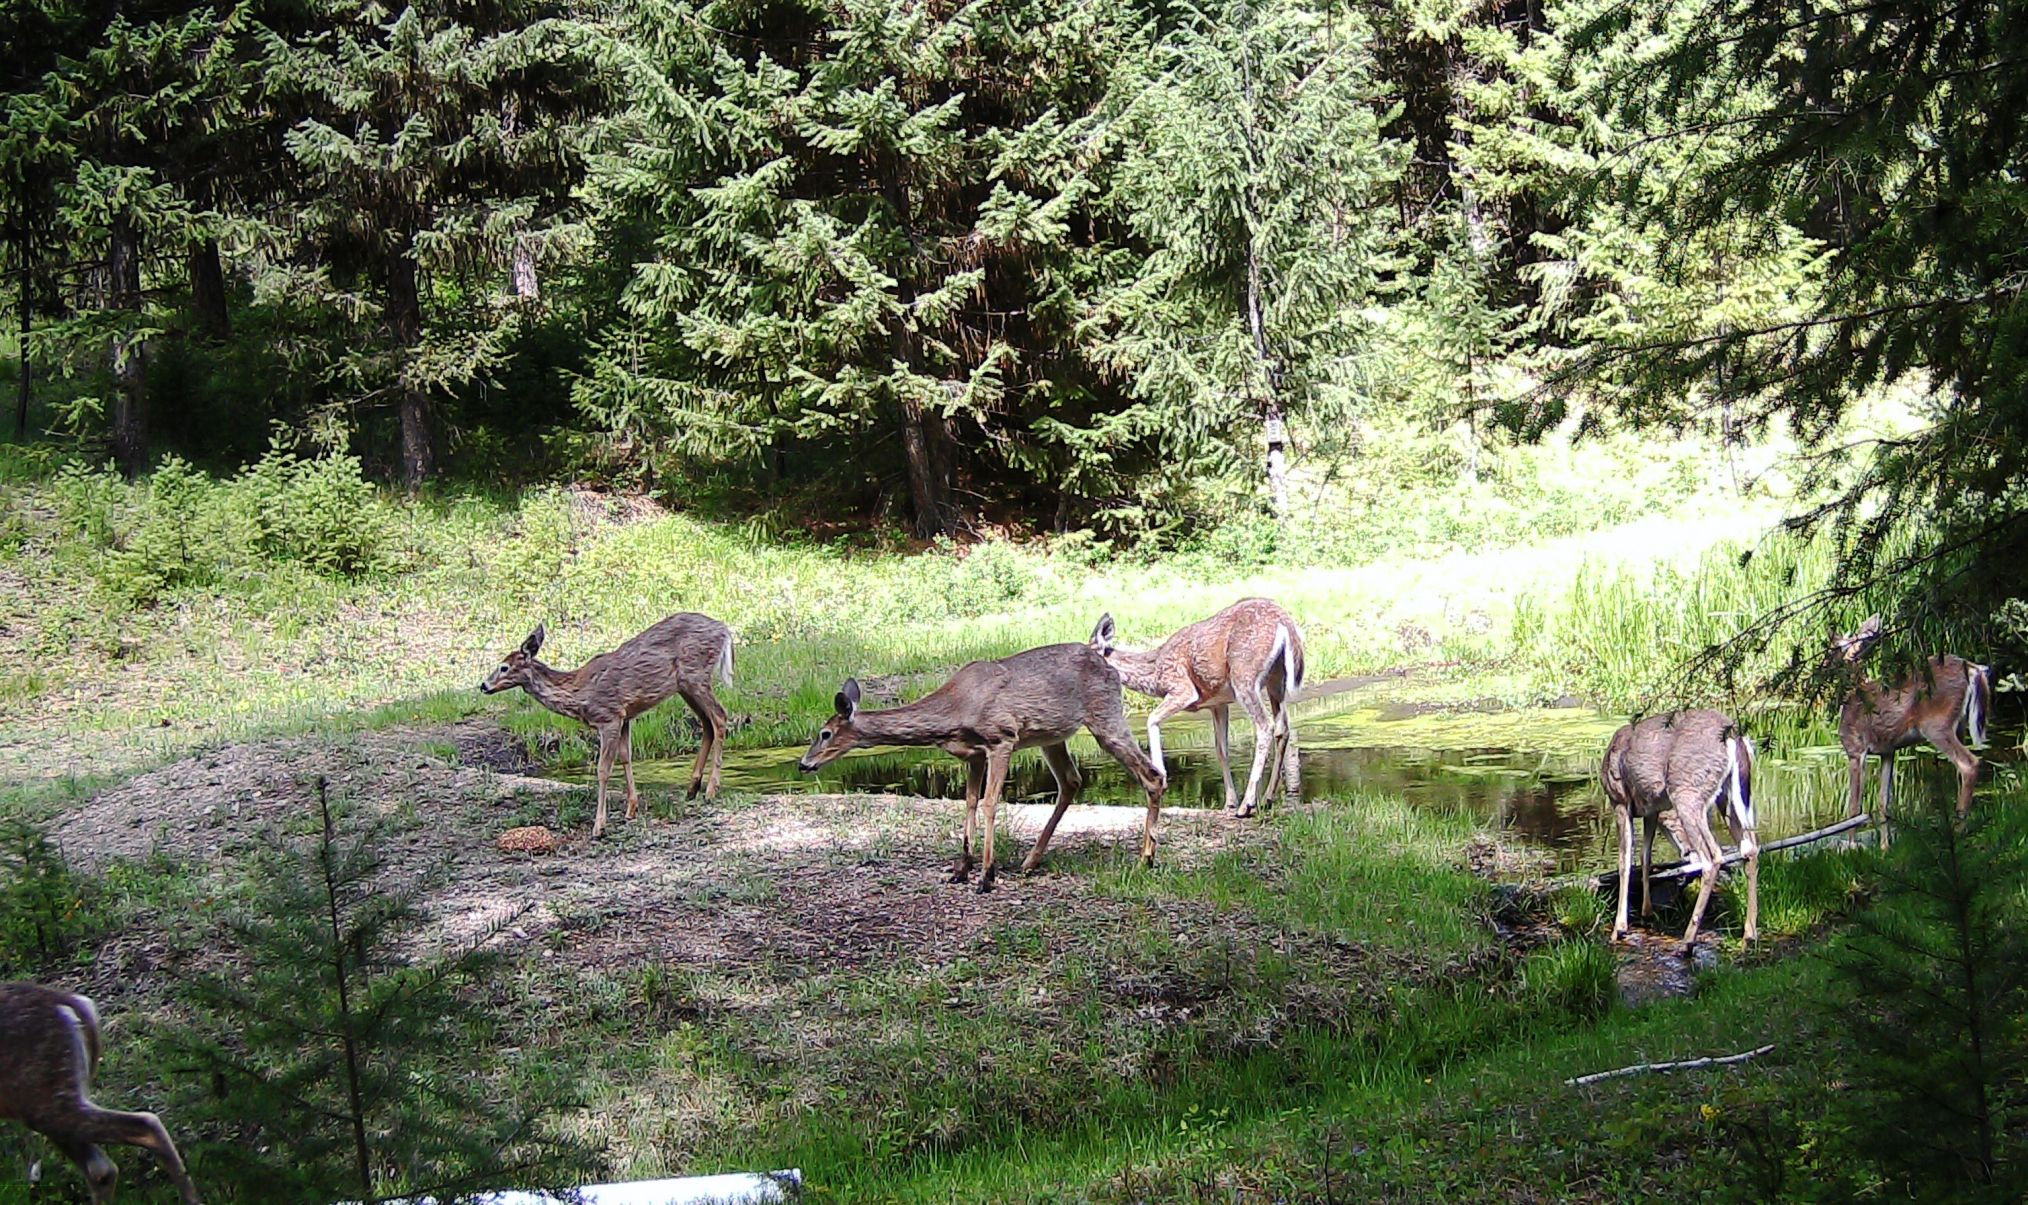 2016-05-13 - 6 Deer at the SR2 Pond